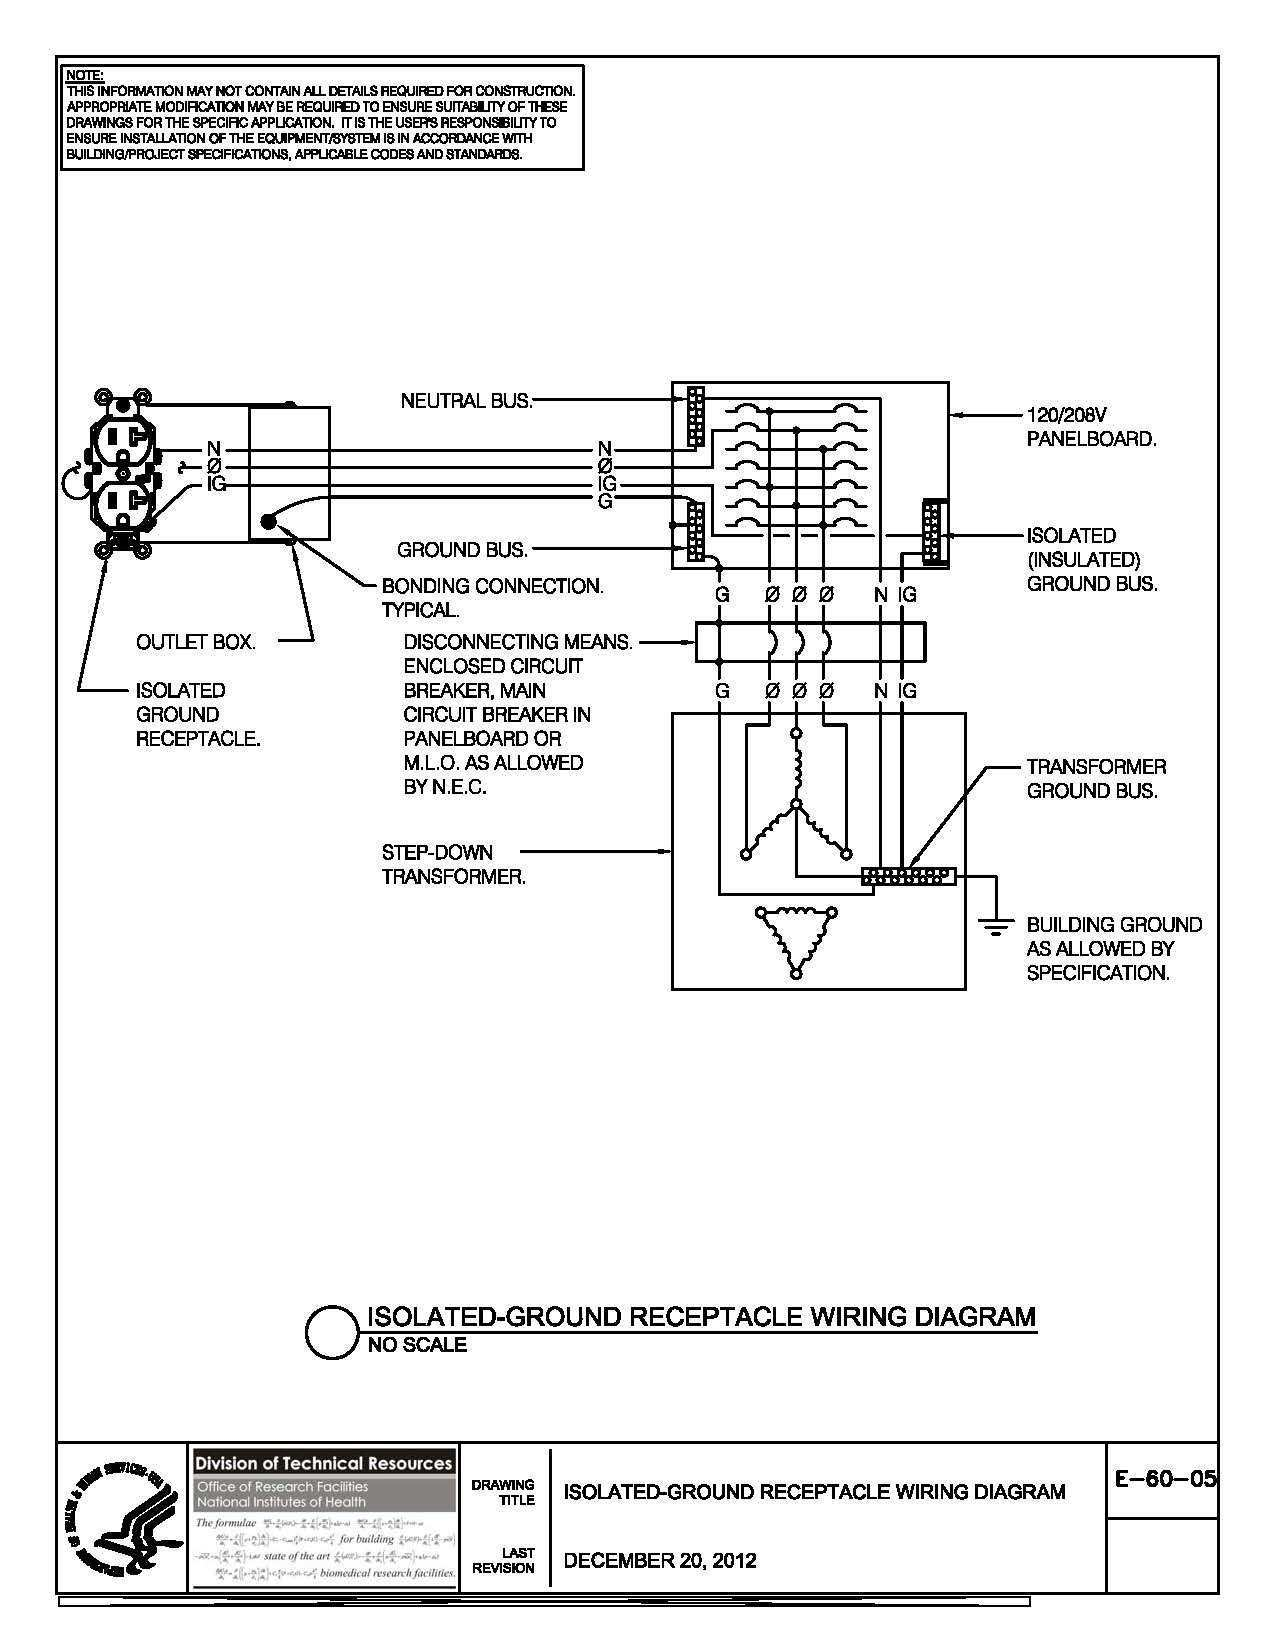 invisible fence wiring diagram Collection-Gallery of New Invisible Fence Wiring Diagram 16-q